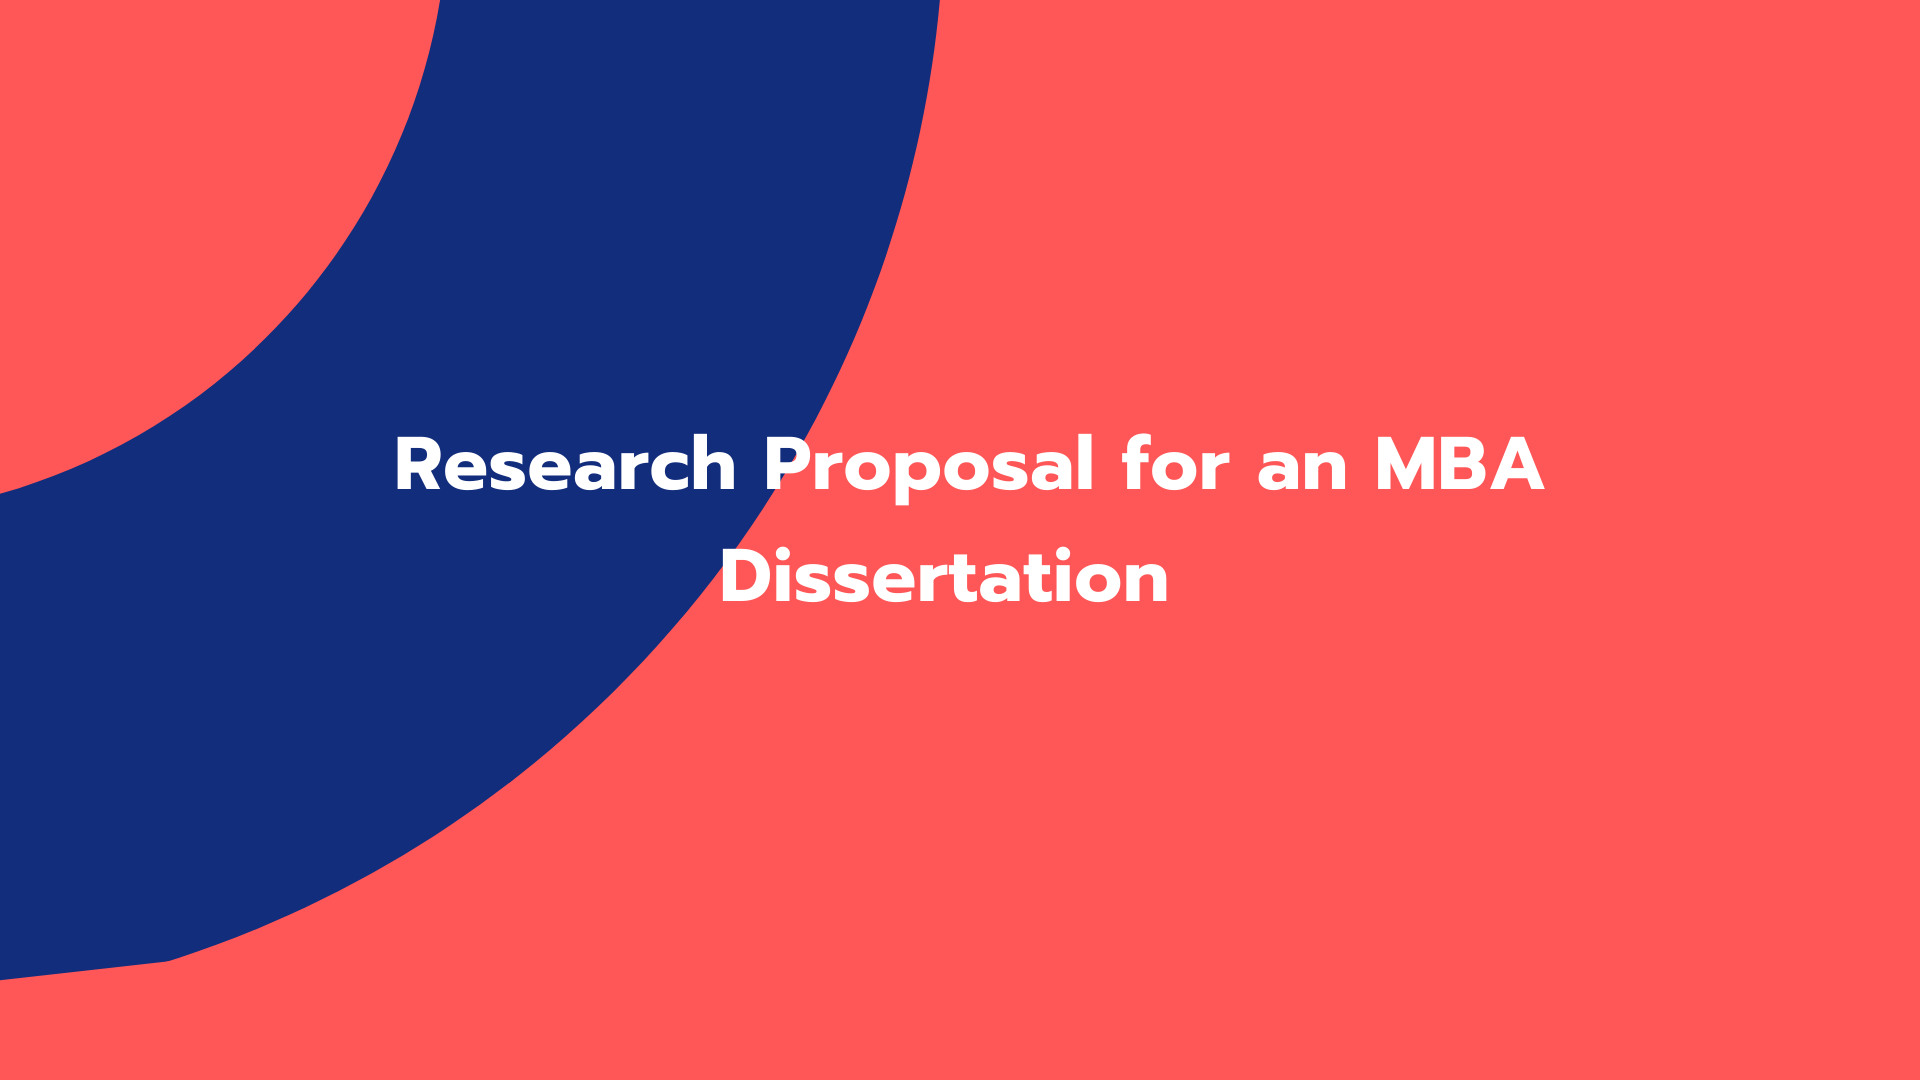 Research Proposal for an MBA Dissertation